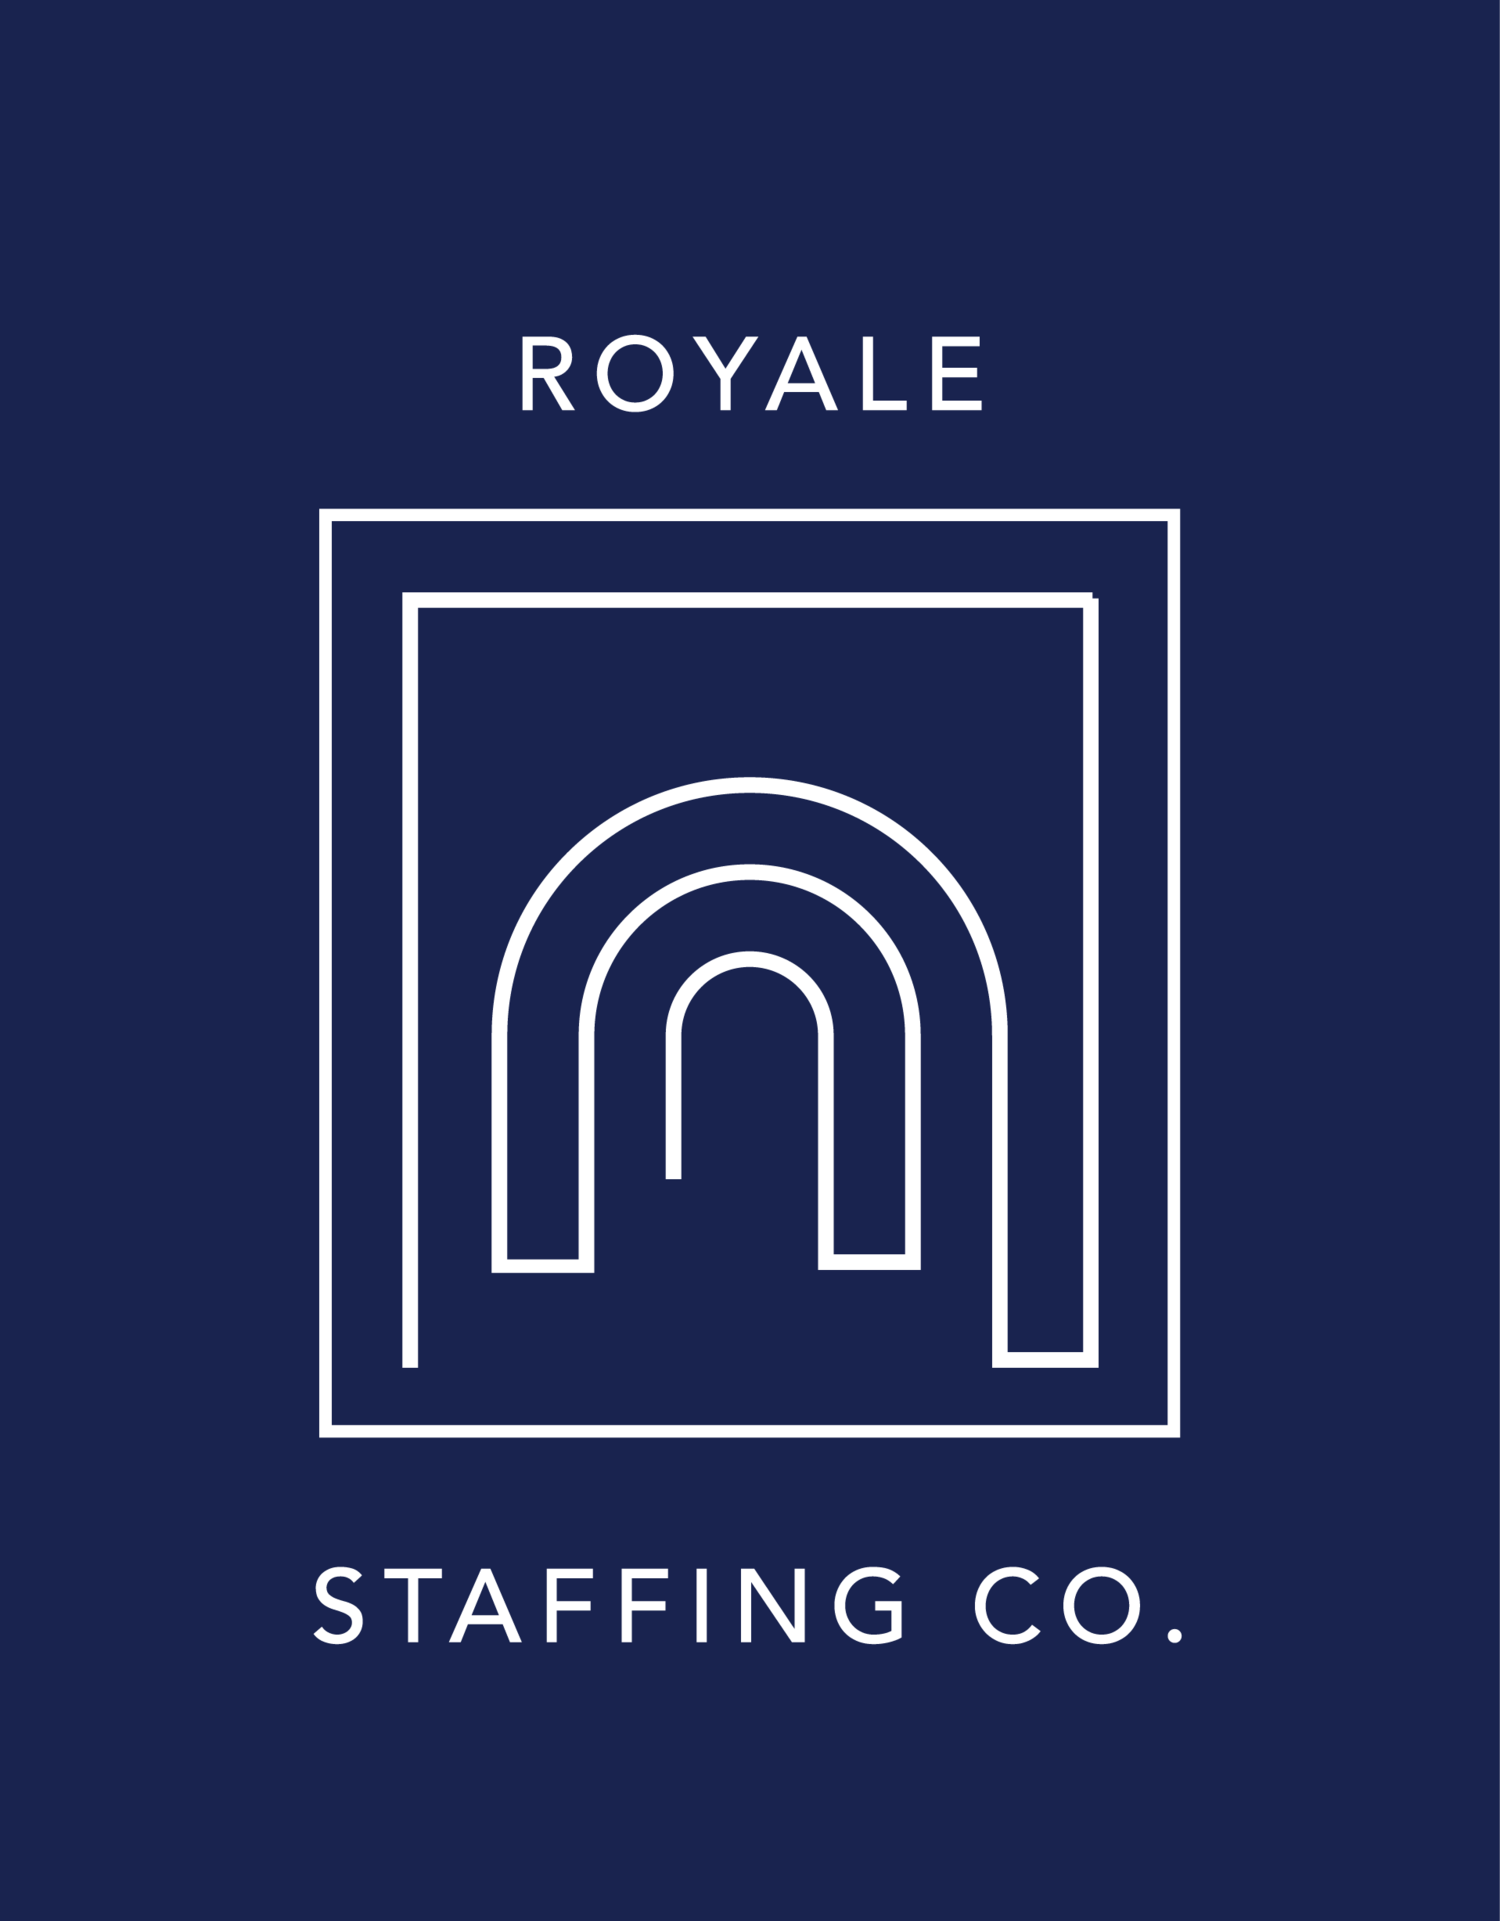 Royale Staffing Company